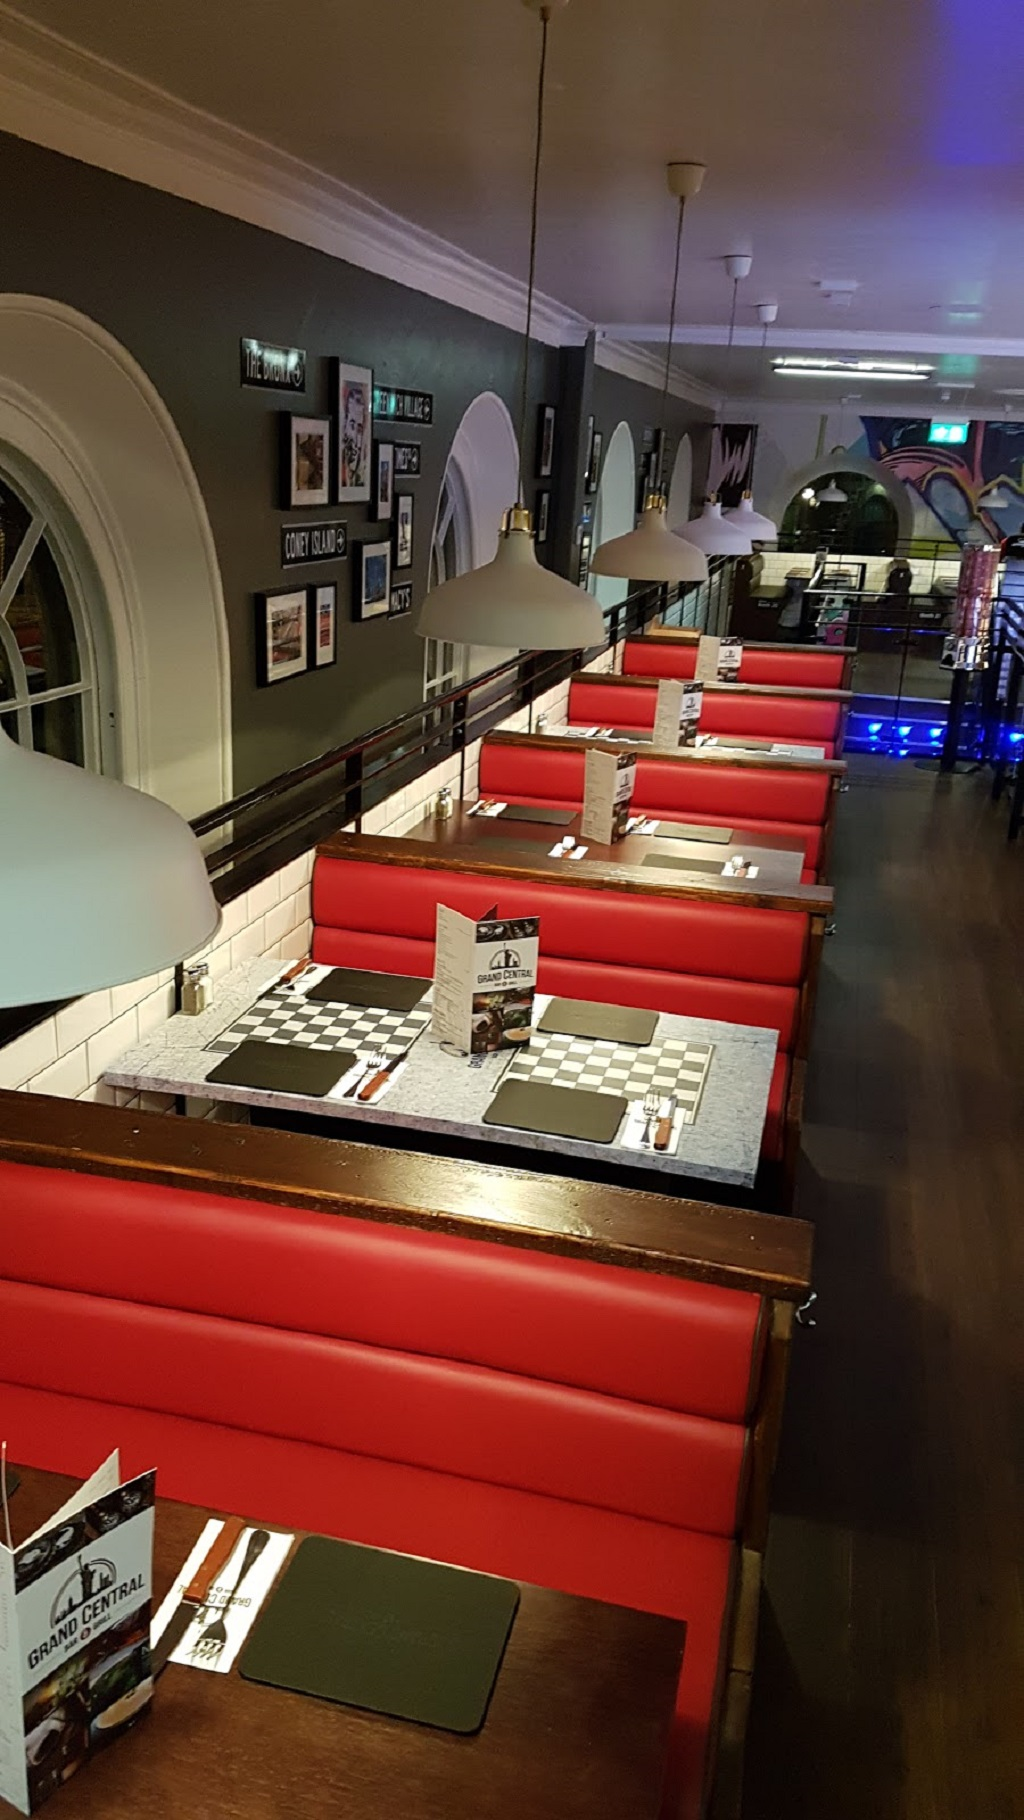 Cucina Restaurant In Leigh On Sea Restaurant Seating Restaurant Upholstery Hill Upholstery Design